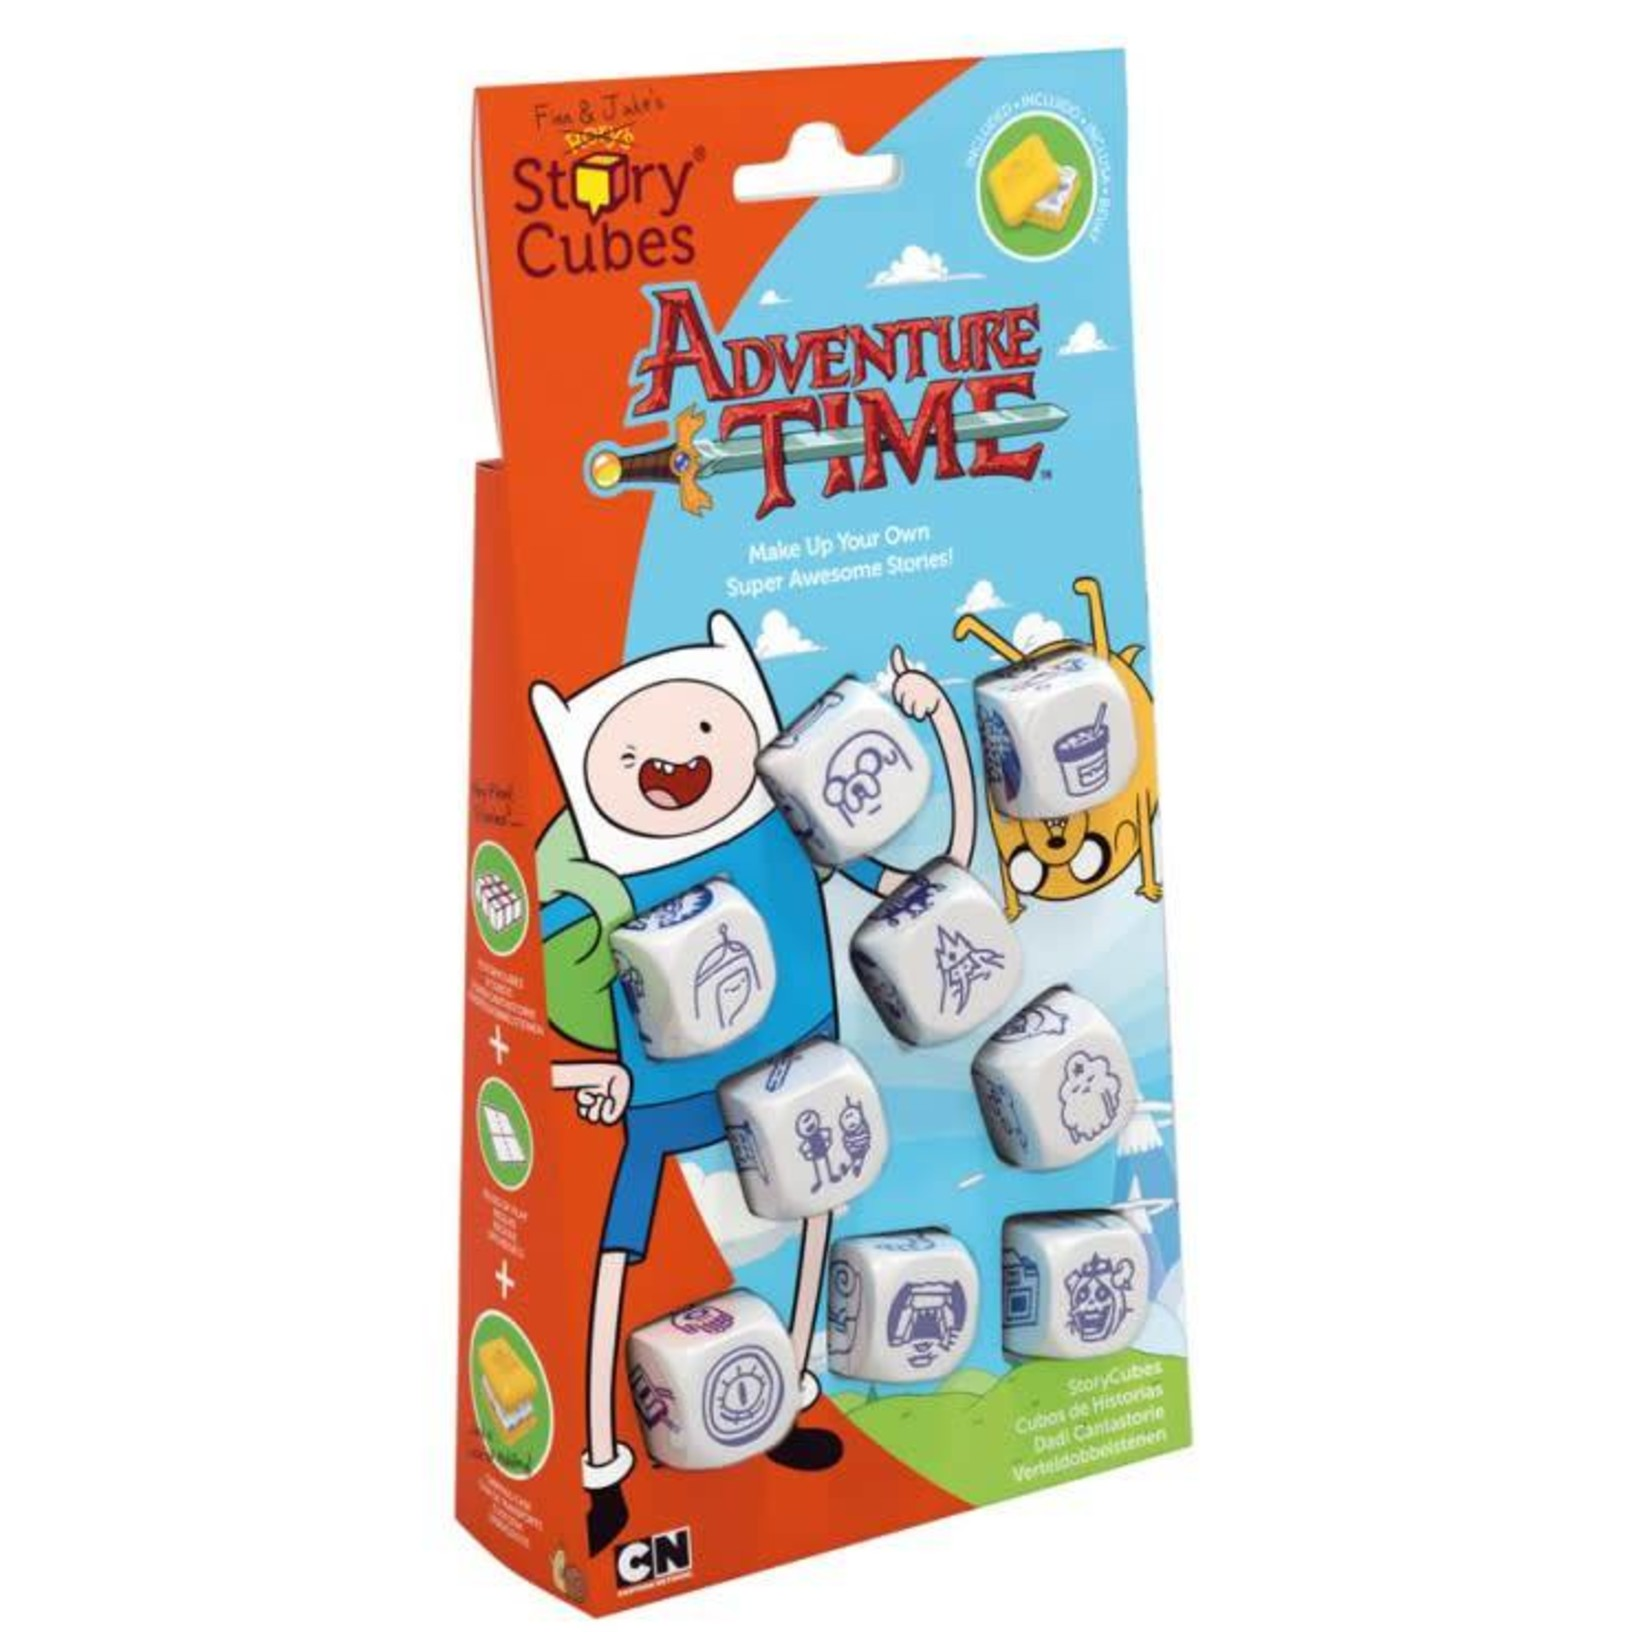 Rory's Story Cubes Rorys Story Cubes: Adventure Time